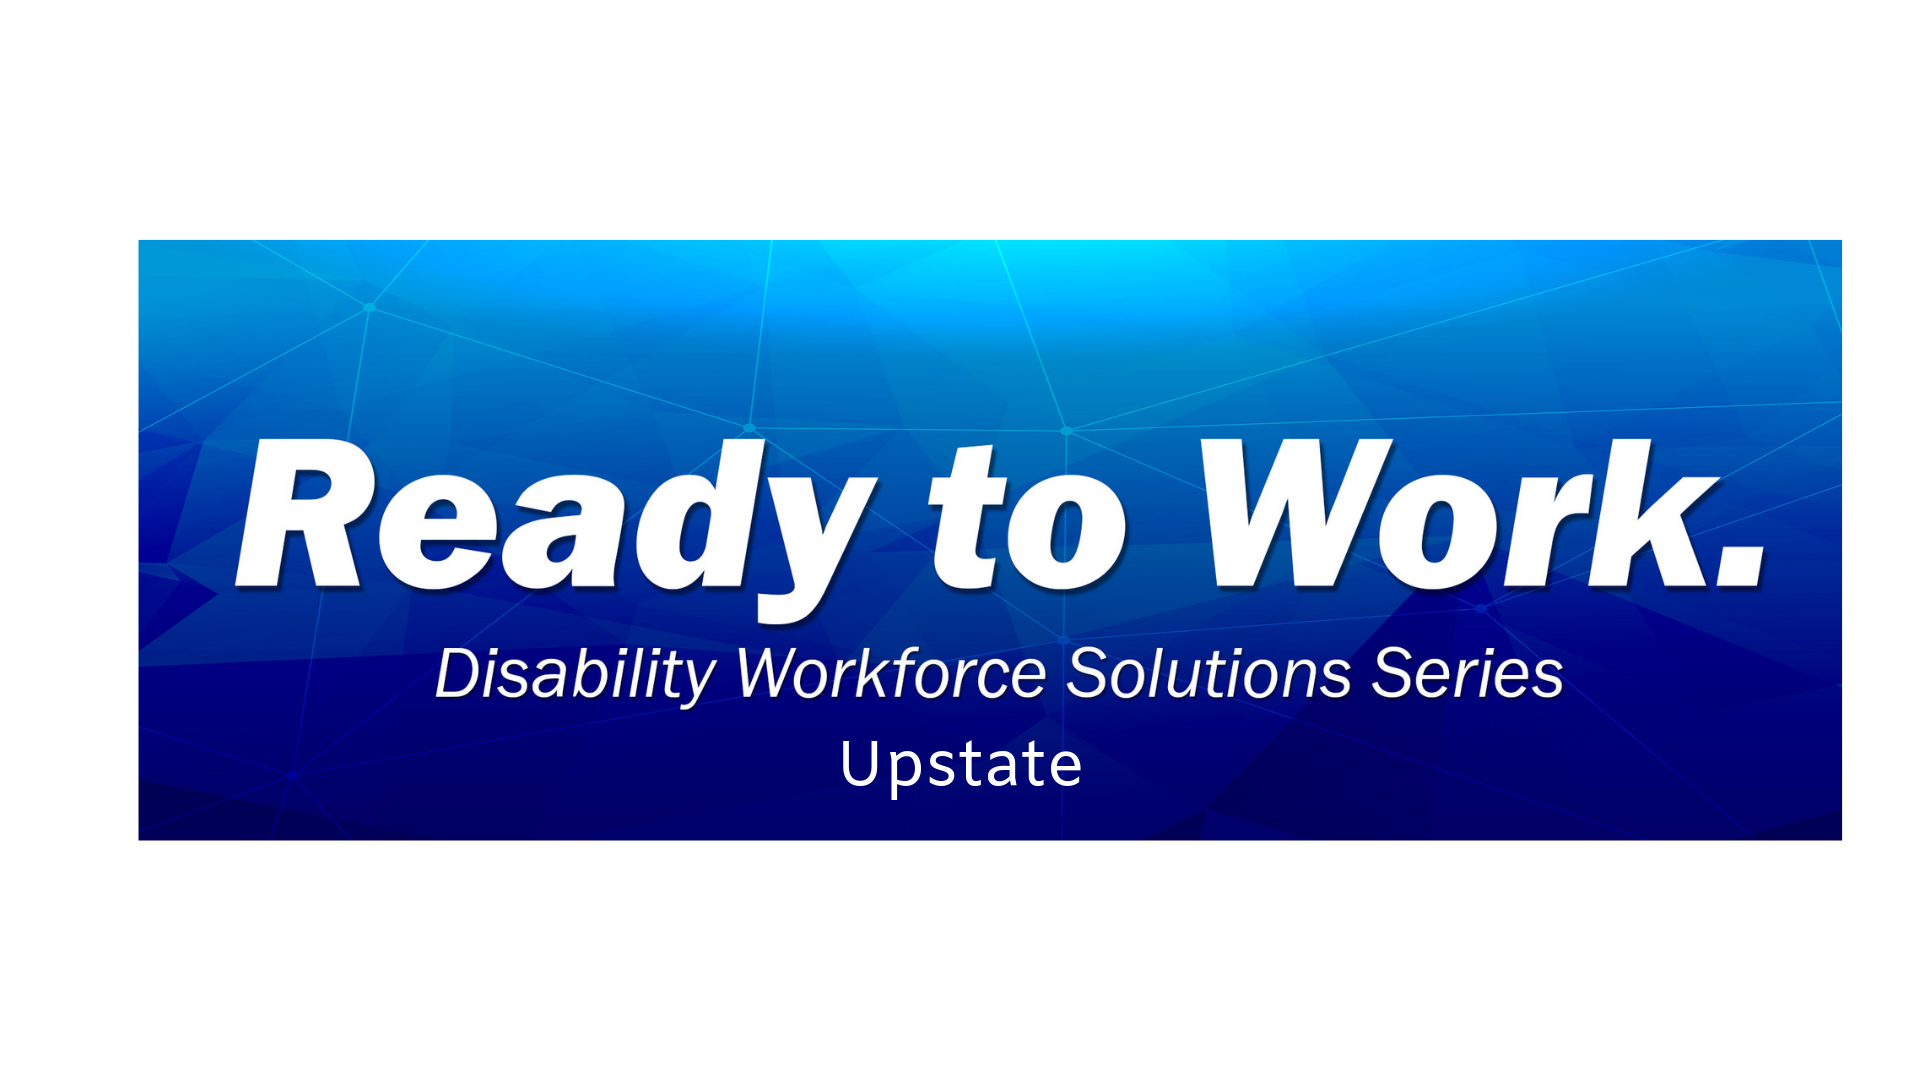 """A blue background with white text that reads """"Ready to Work. Disability Workforce Solutions Series. Upstate."""""""